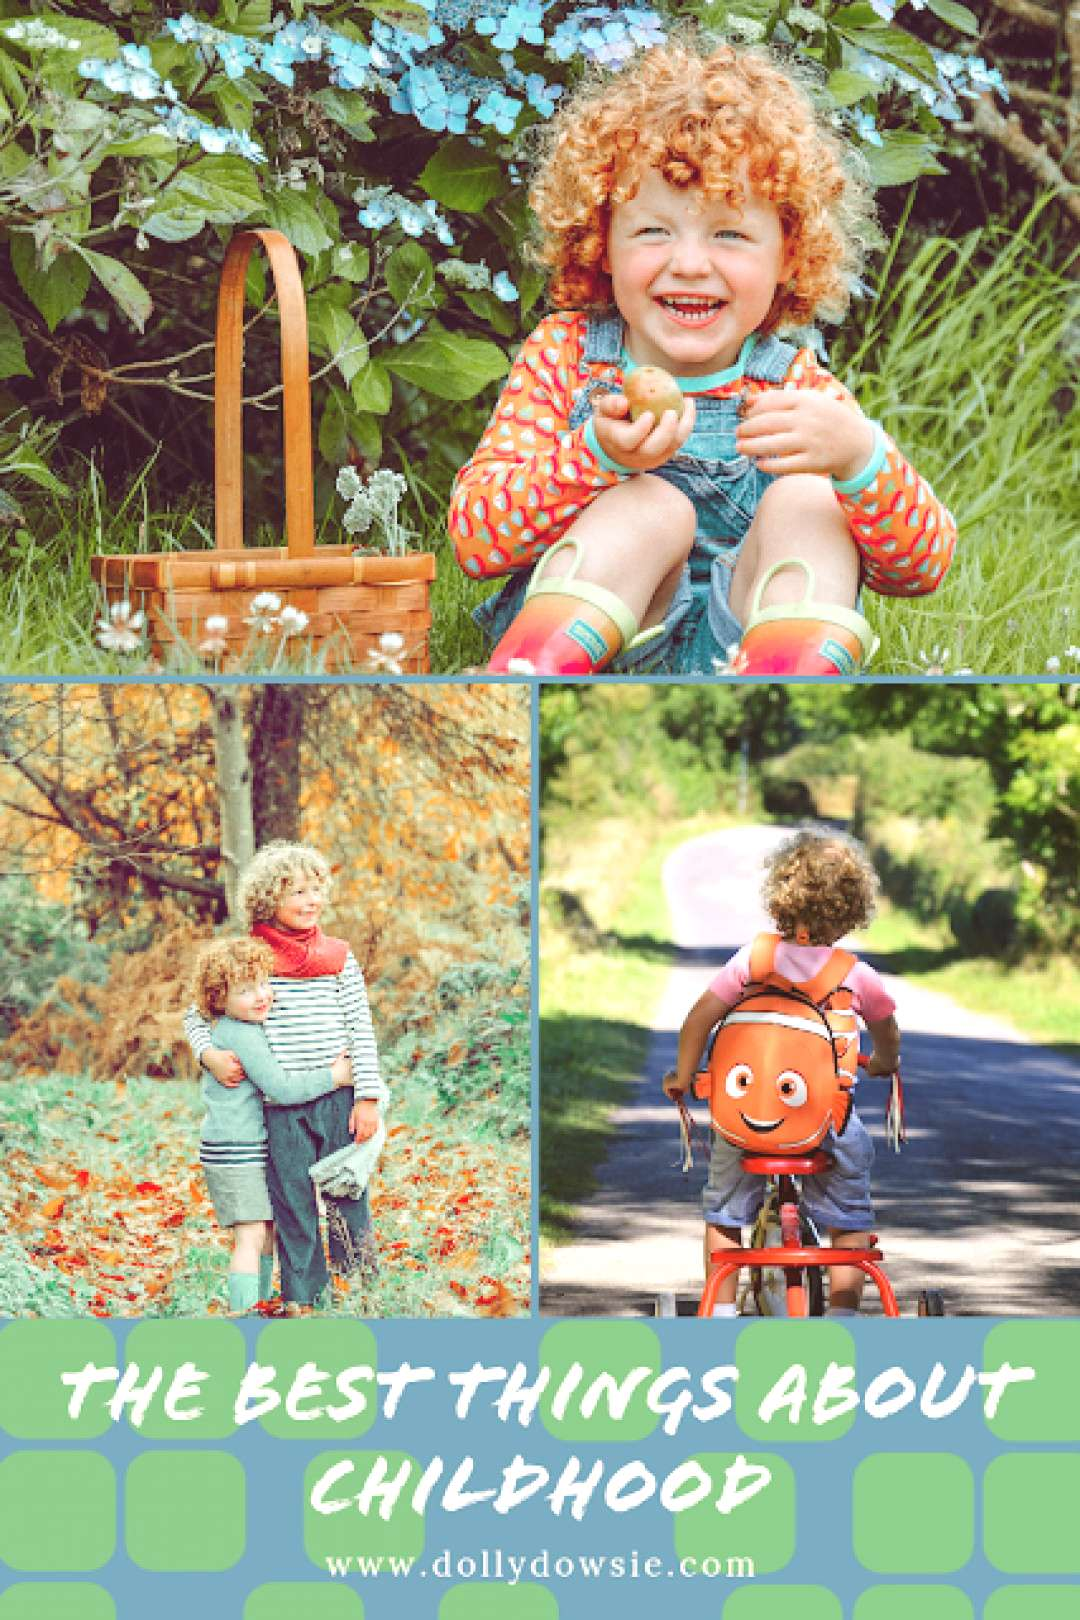 The Best Things About Childhood ♥ The Best Things About Childhood ♥   The best things about chi